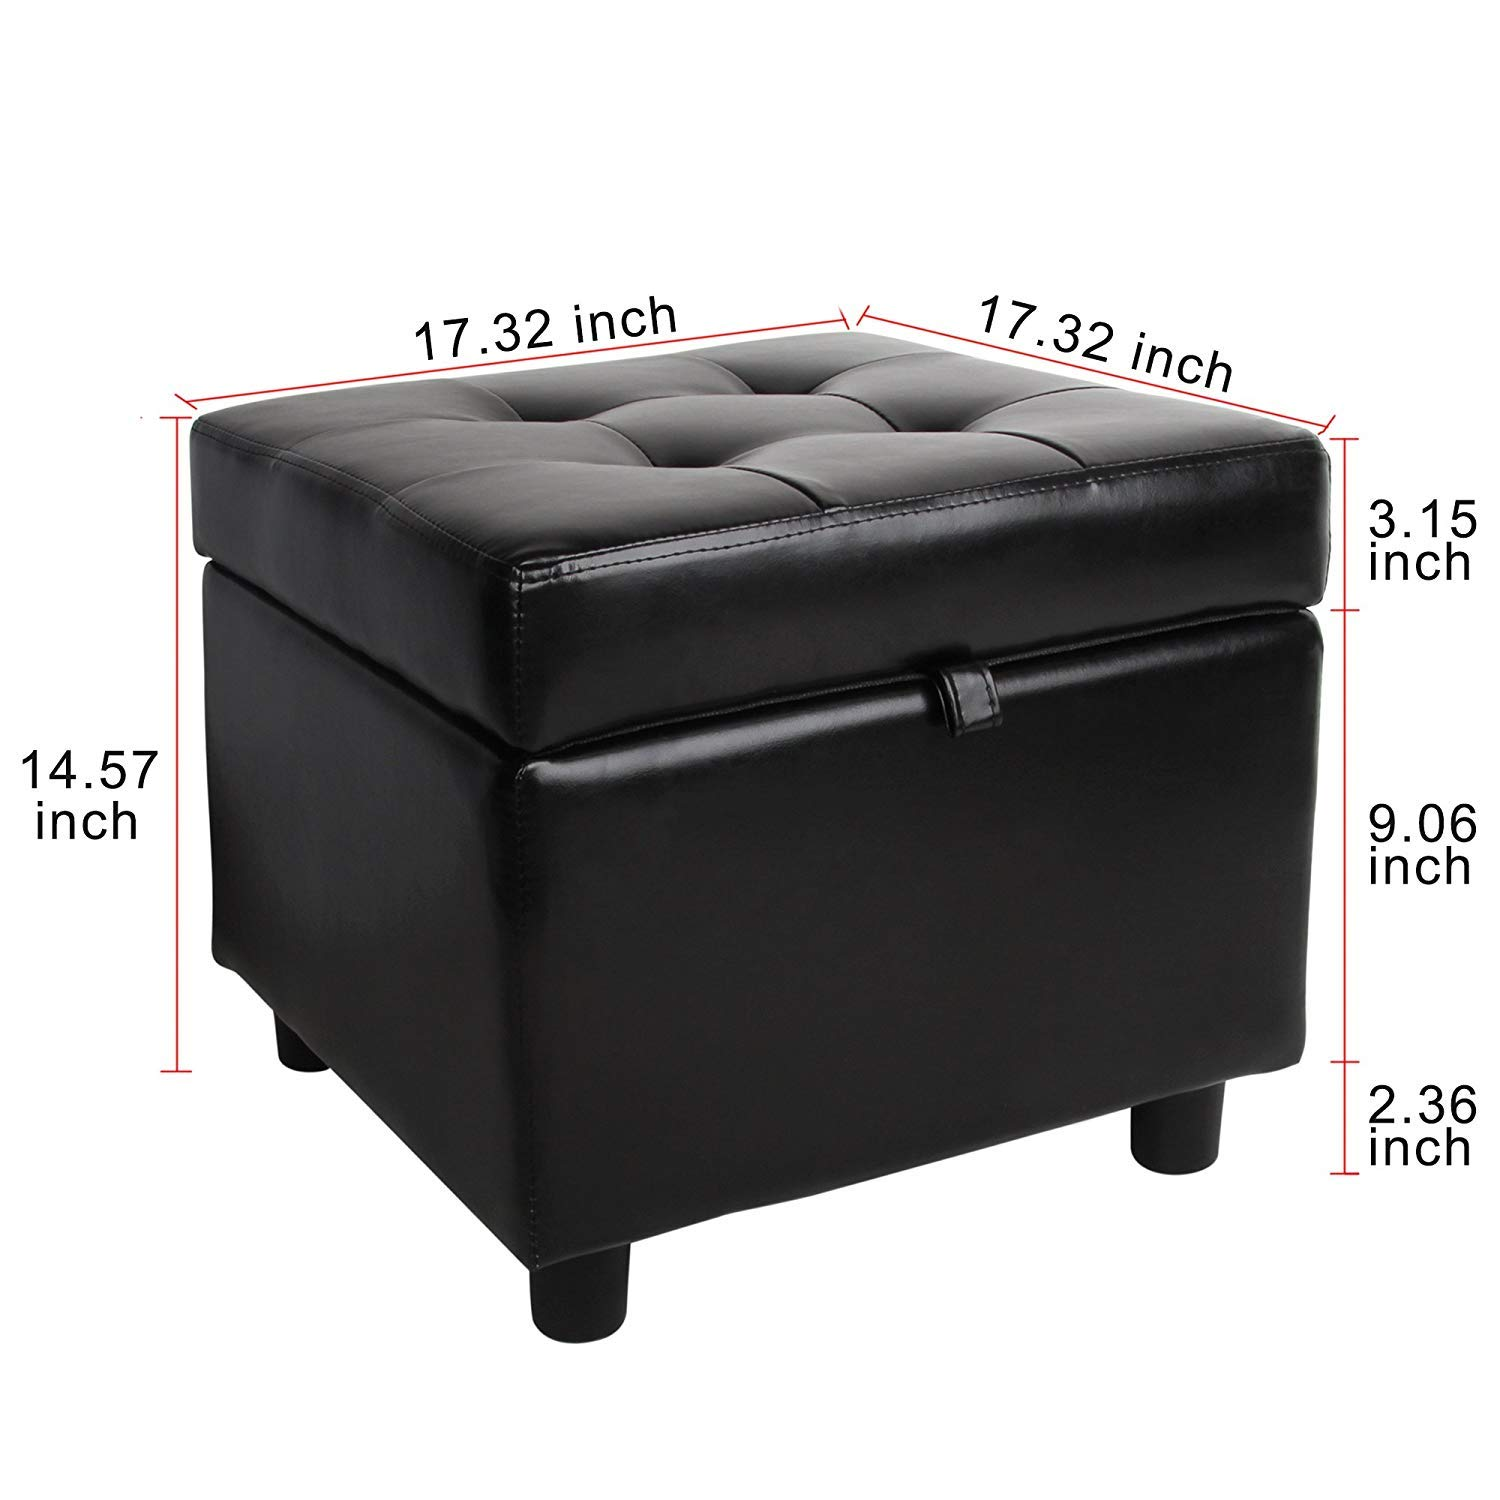 Tufted Leather Square Flip Top Storage Ottoman Cube Foot Rest, Black